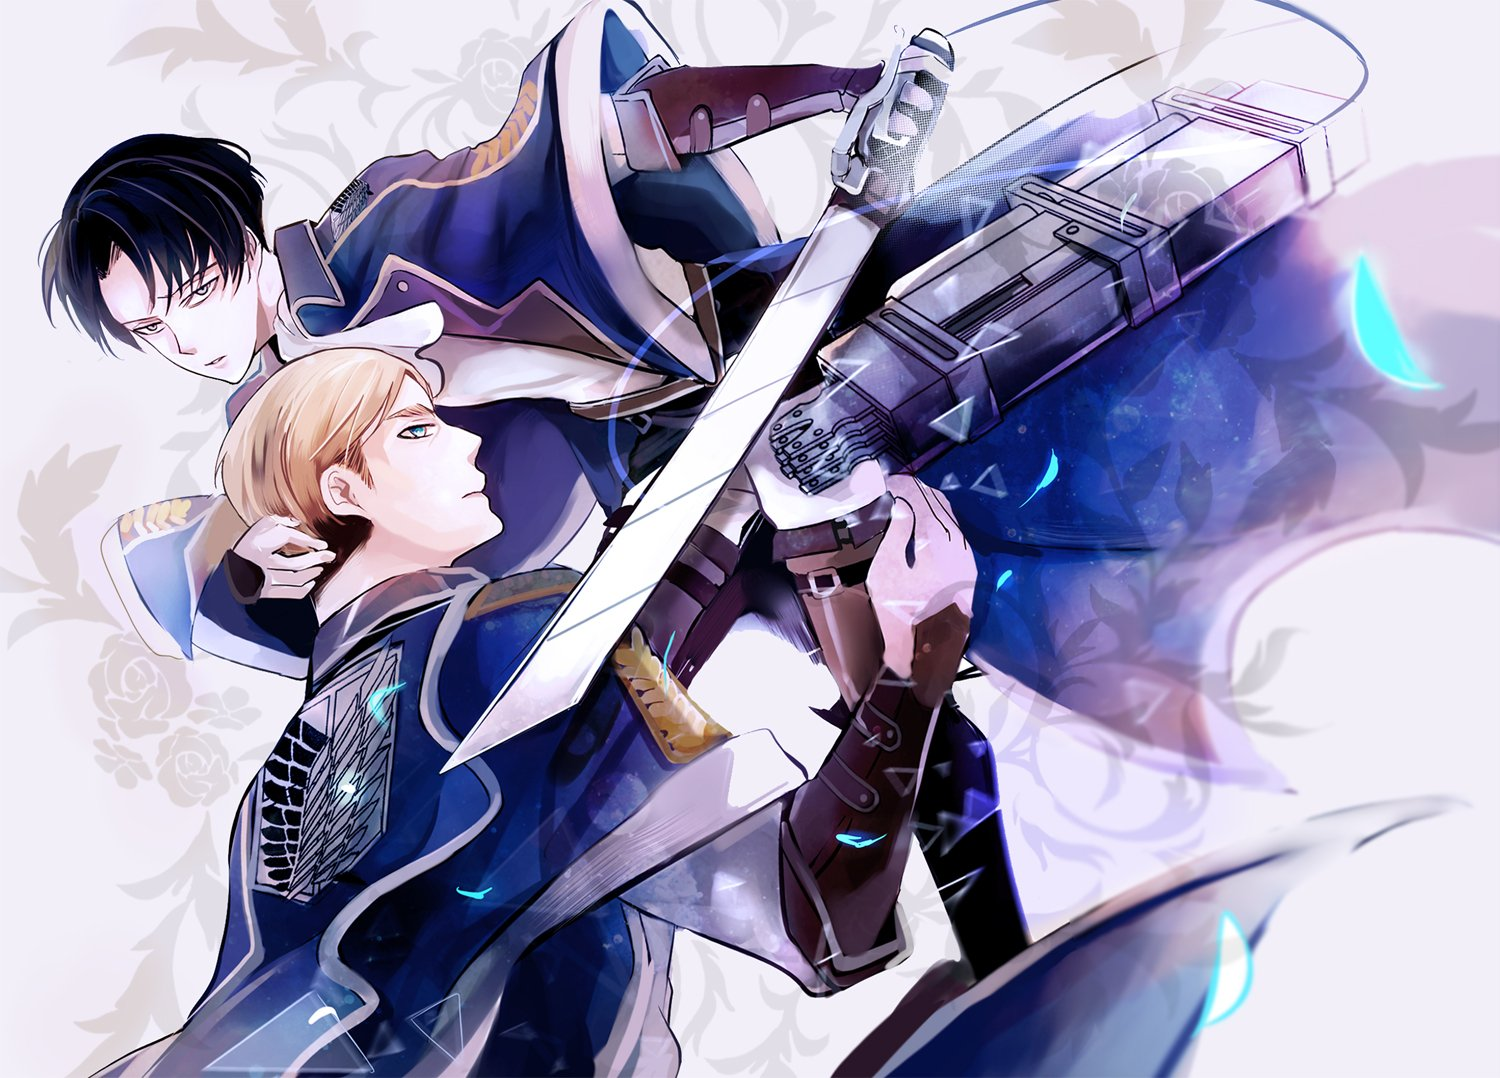 shingeki no kyojin erwin smith and levi ackerman